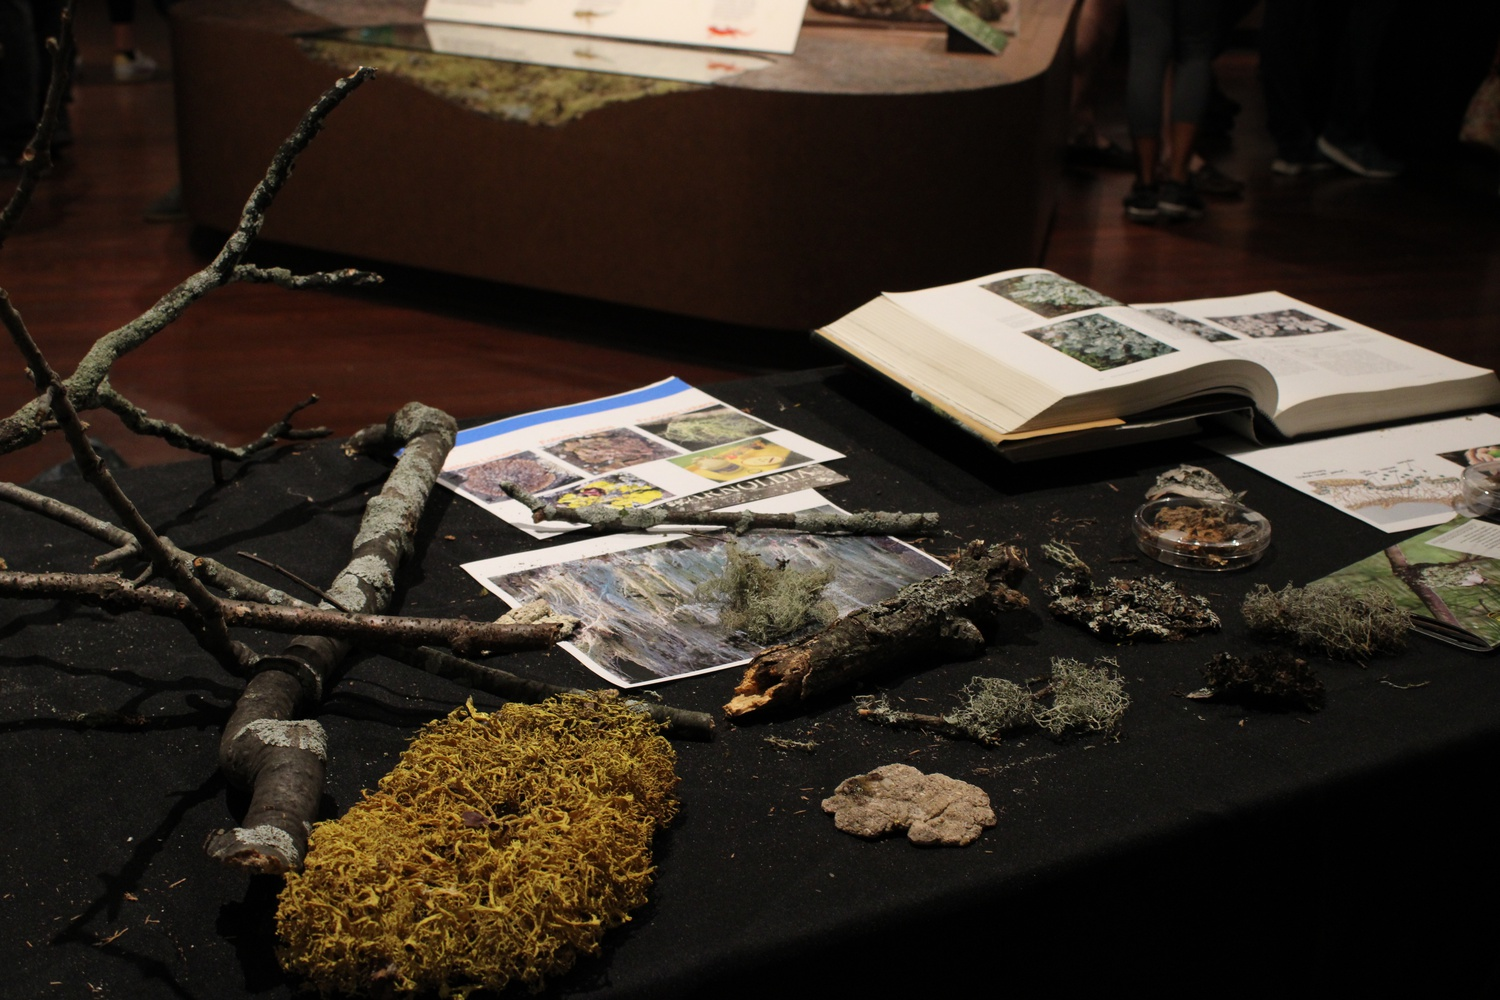 The Fabulous Fungus Fair, led by Harvard students, features a variety of museum collections, displays, and activities surrounding mushrooms, yeasts, and molds.